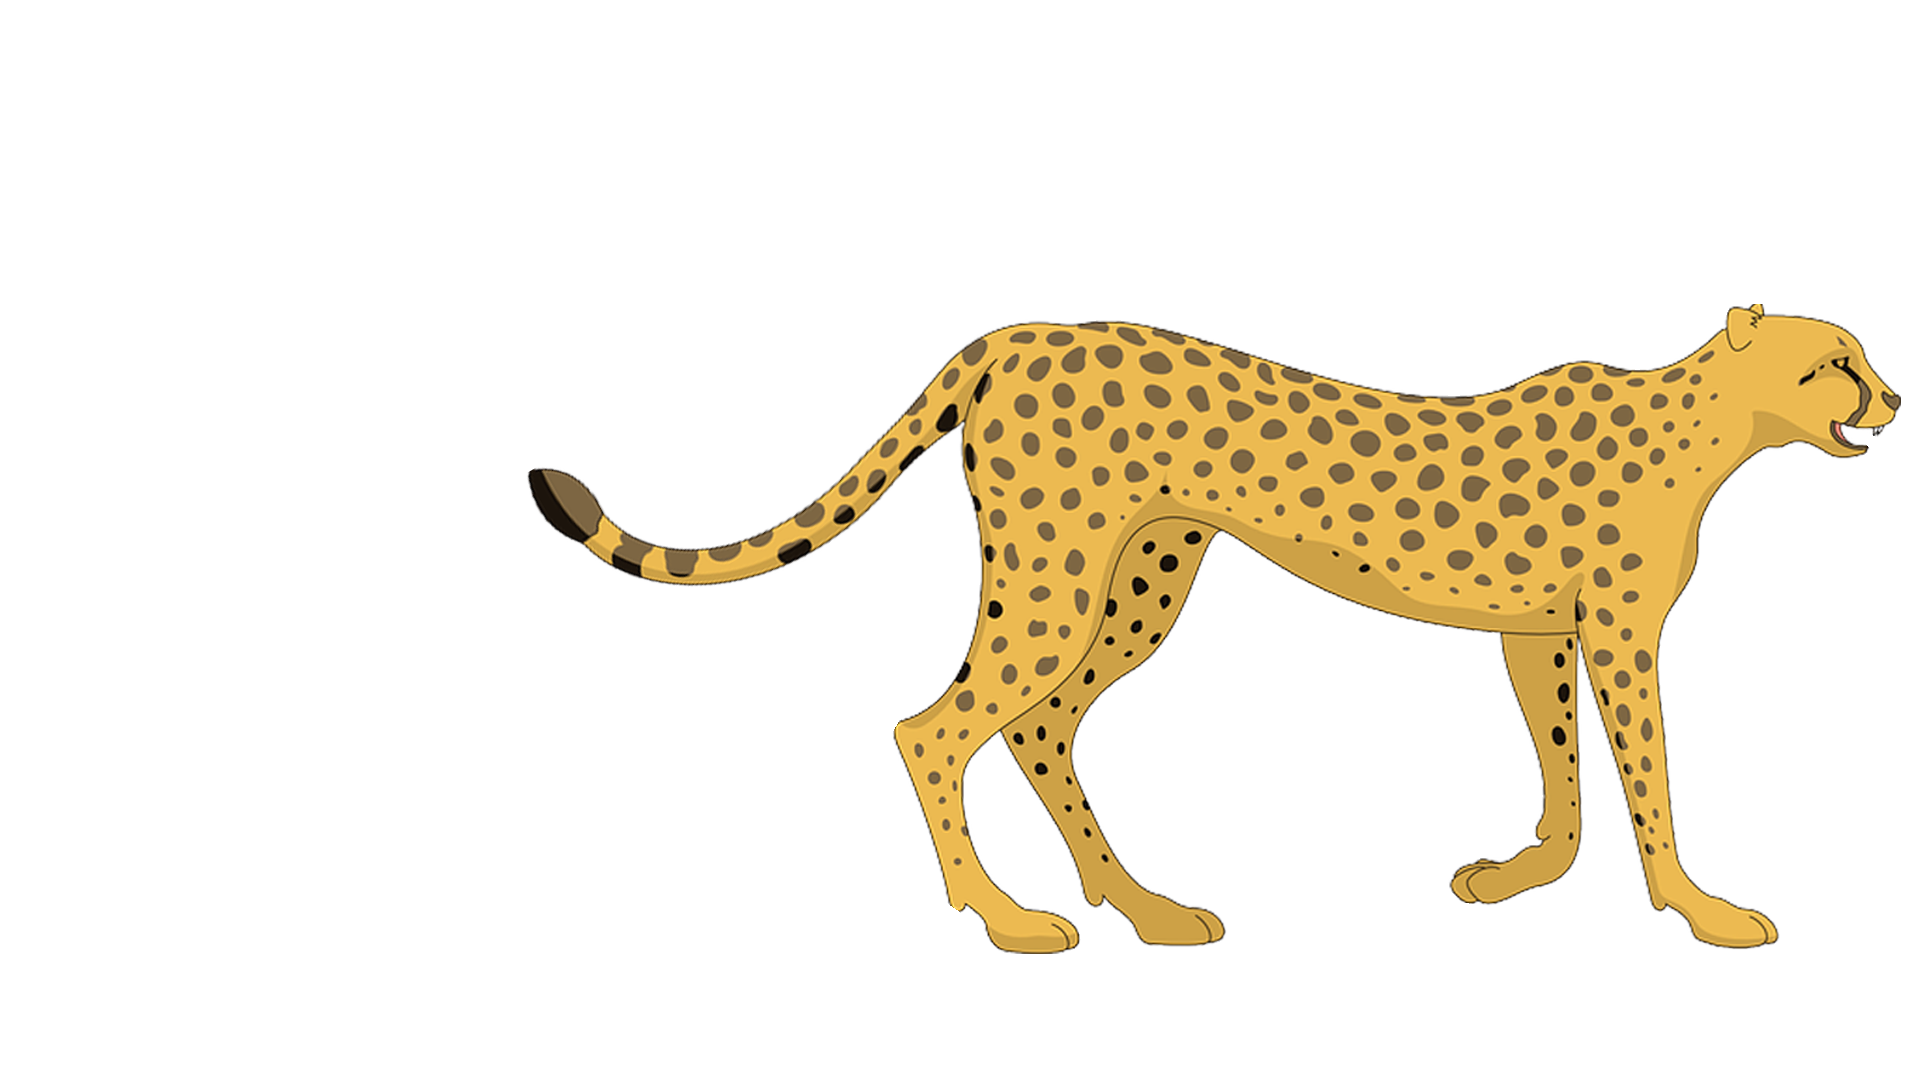 Cartoon cheetah png. Leopard clip art transprent